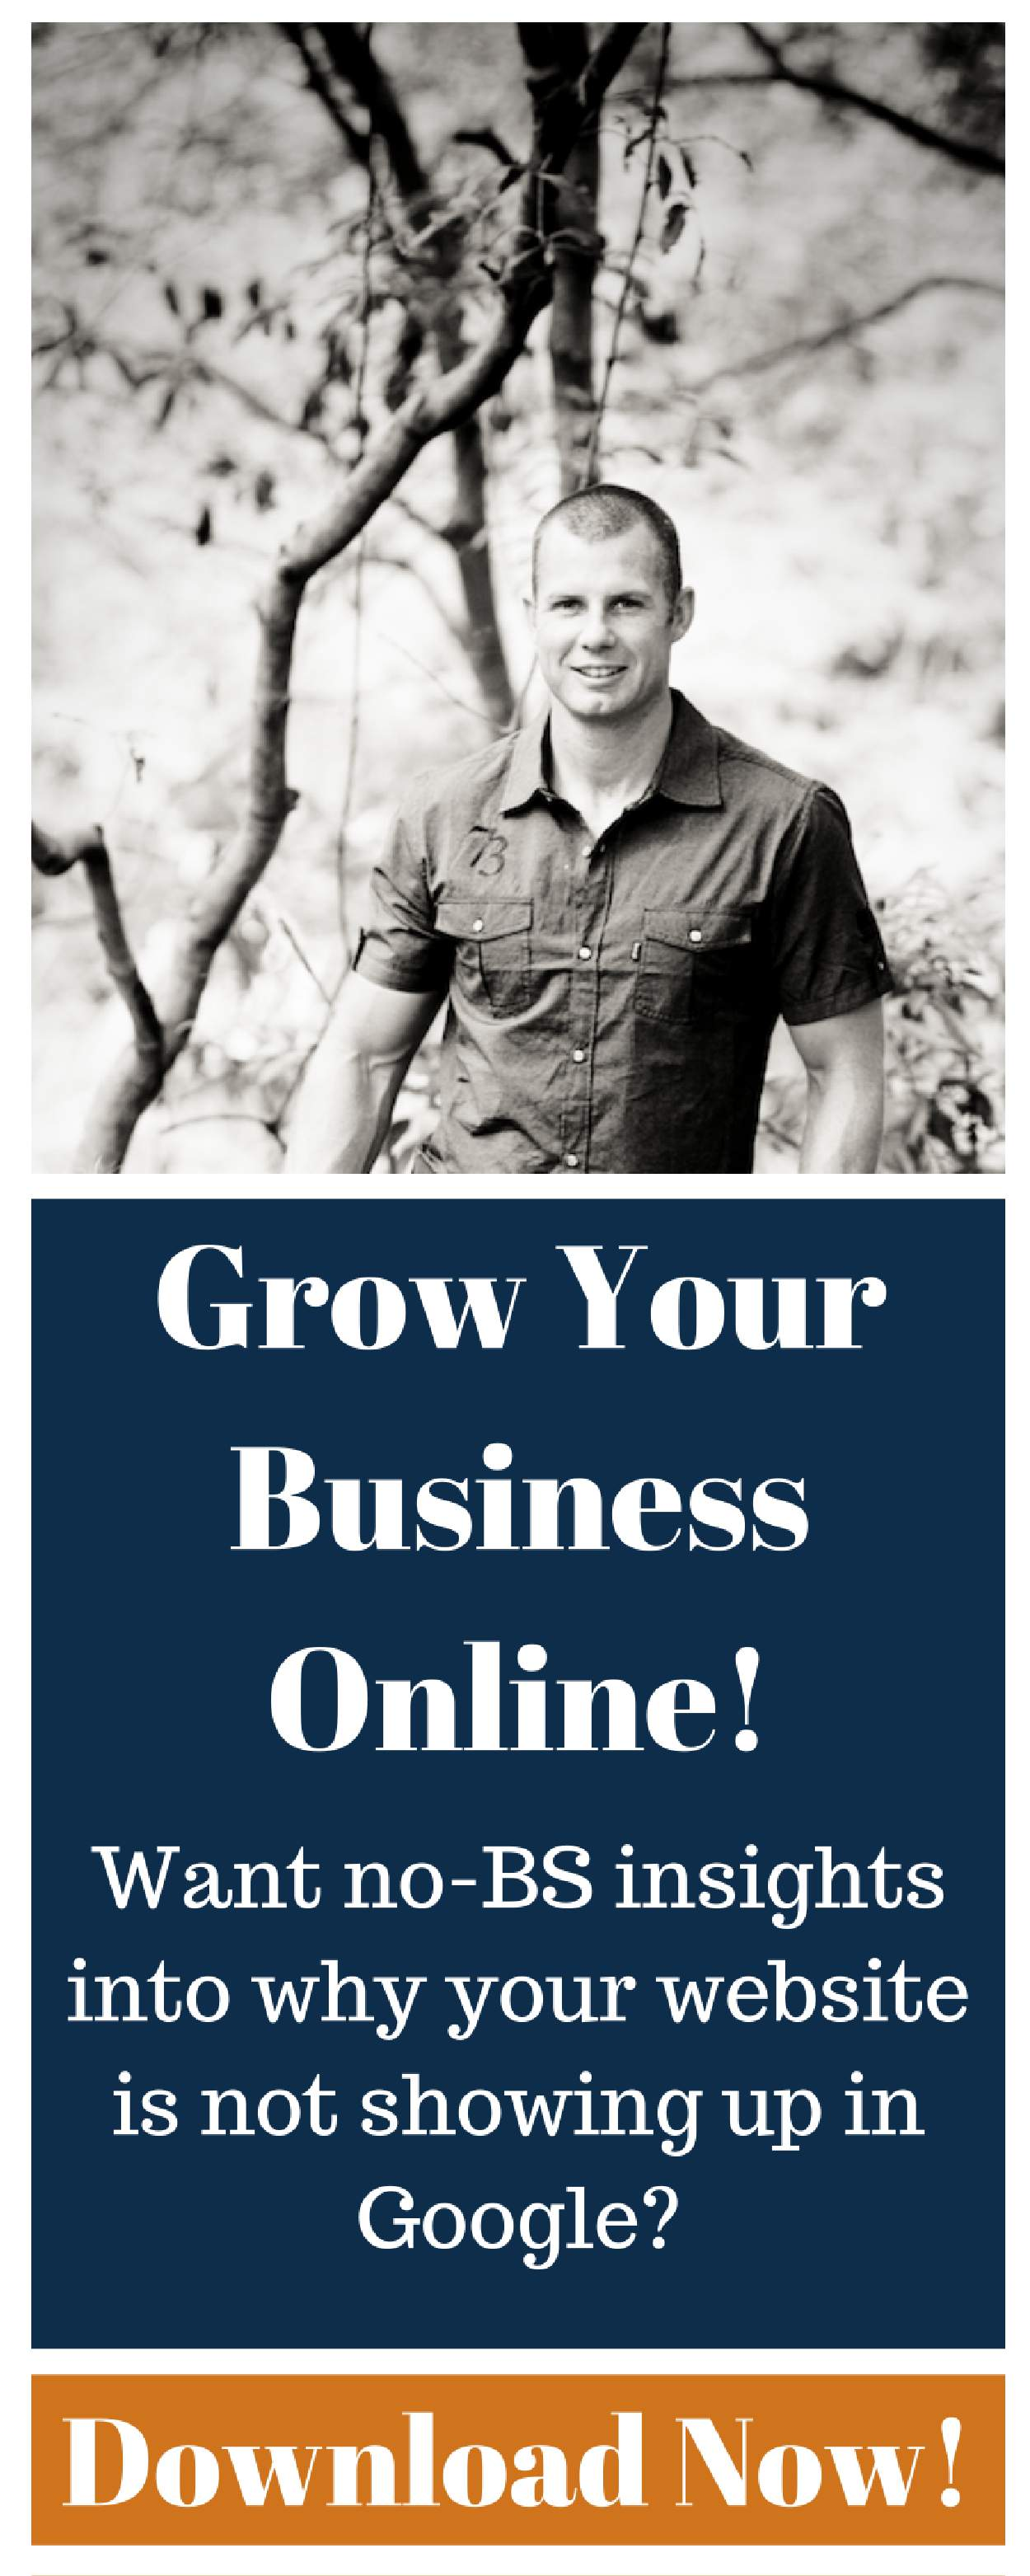 Grow Your Business With Online Marketing